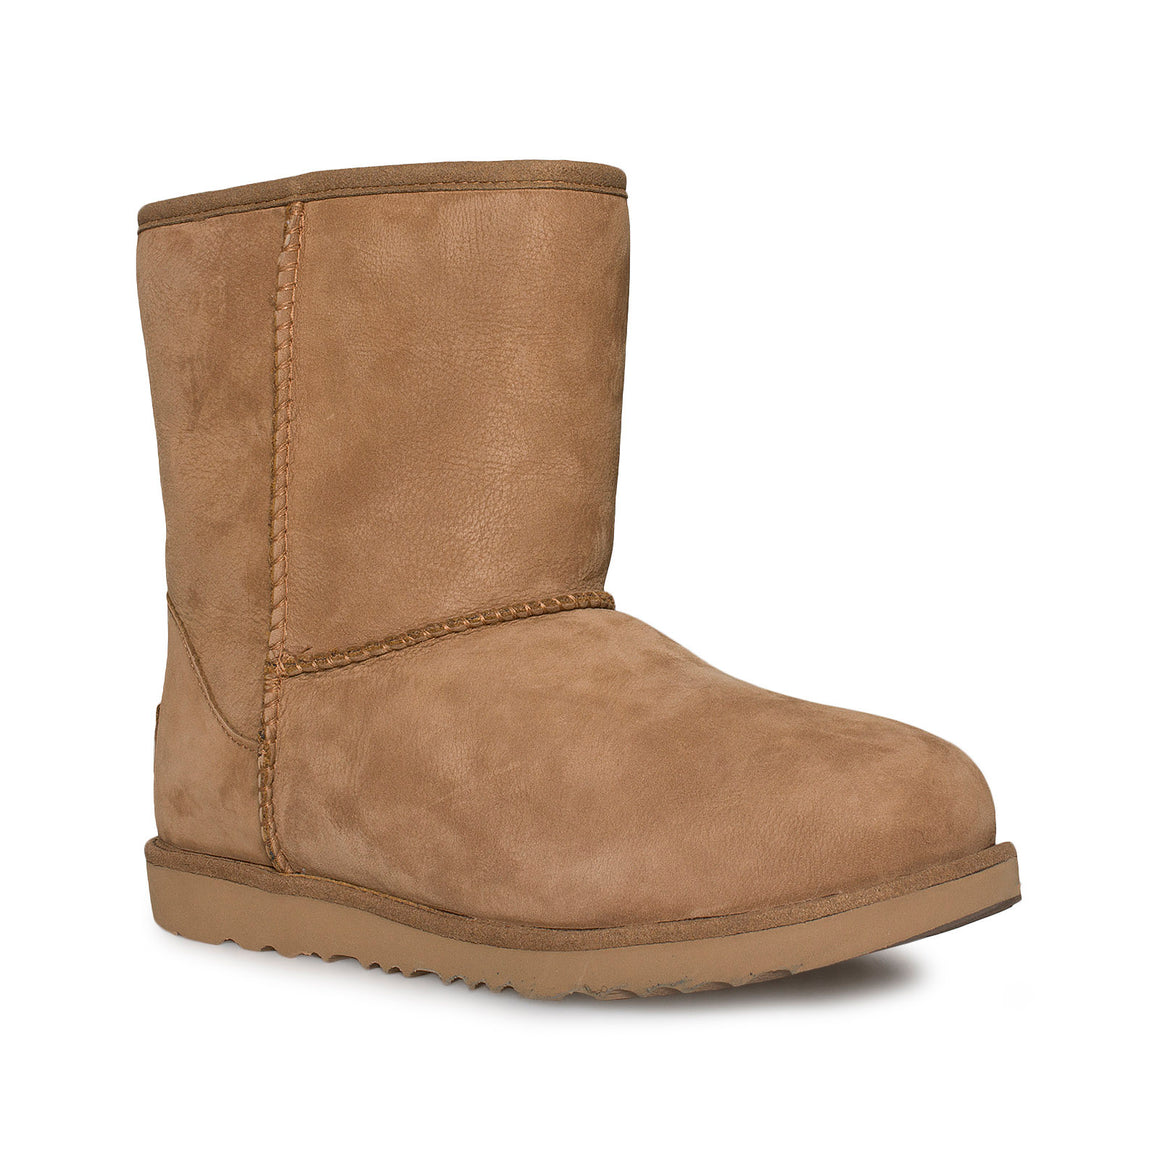 UGG Classic Short II Chestnut Boots - Youth